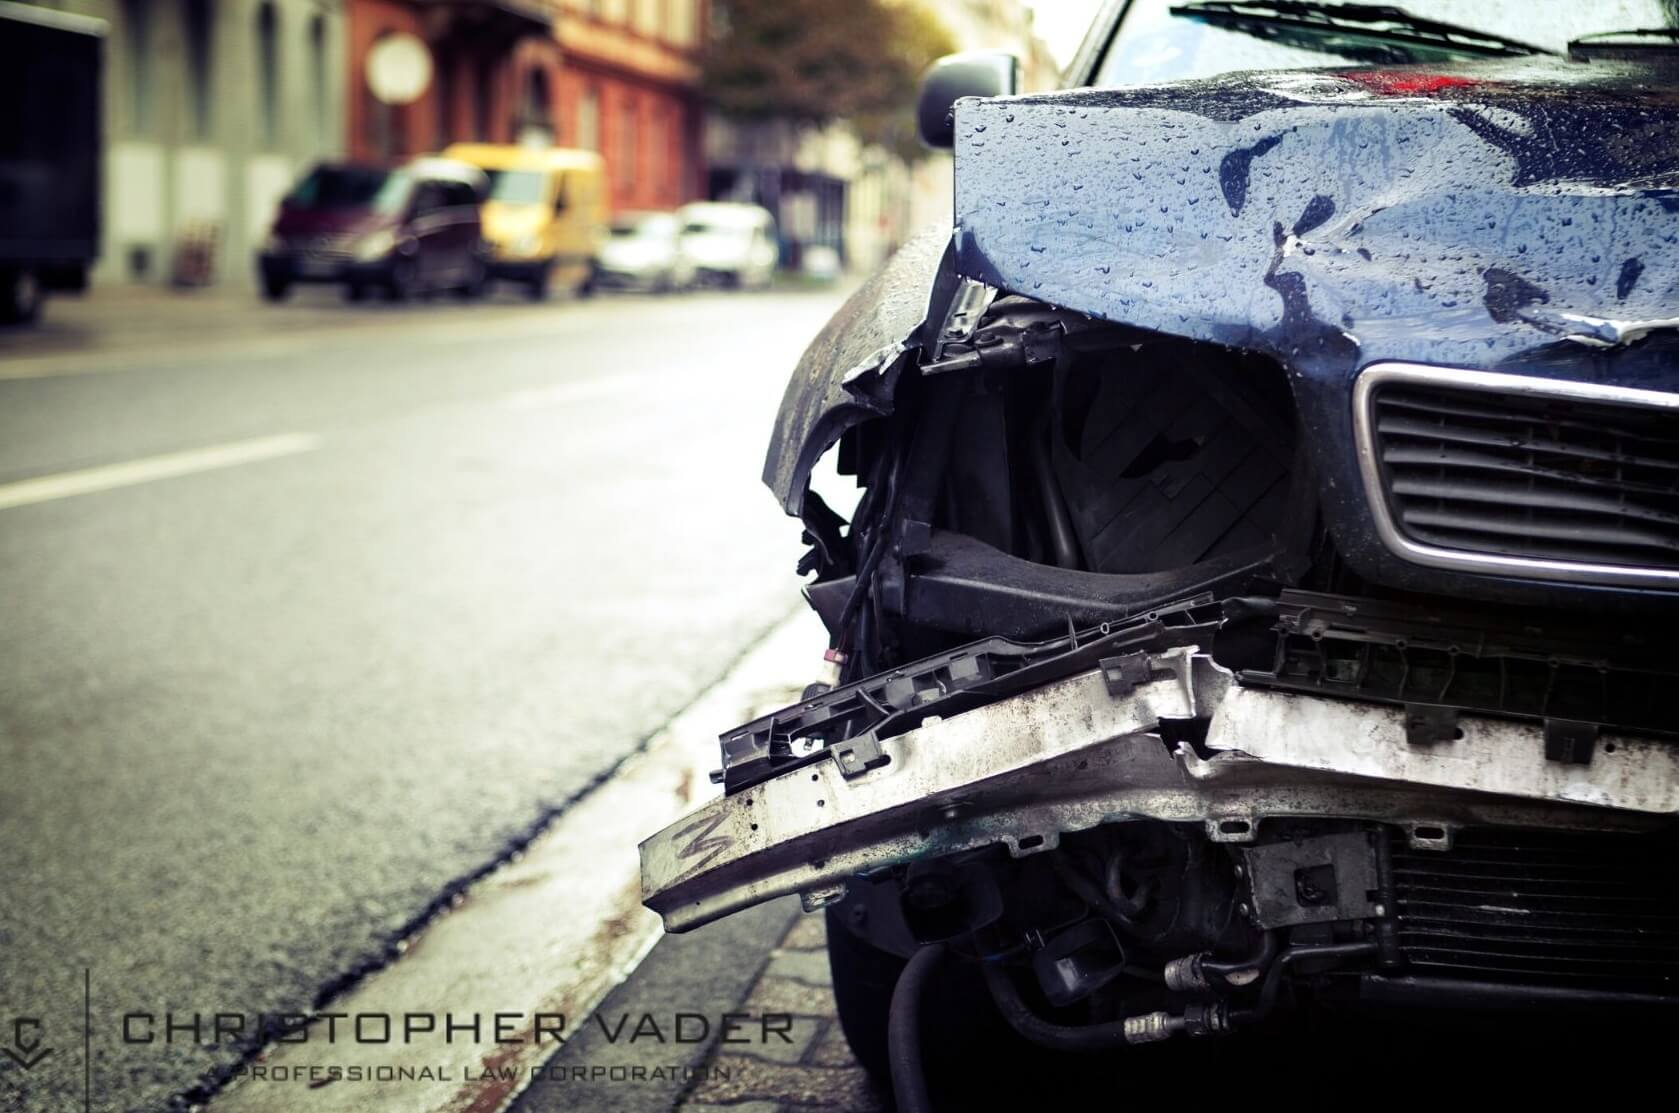 Close up of a car after a car accident